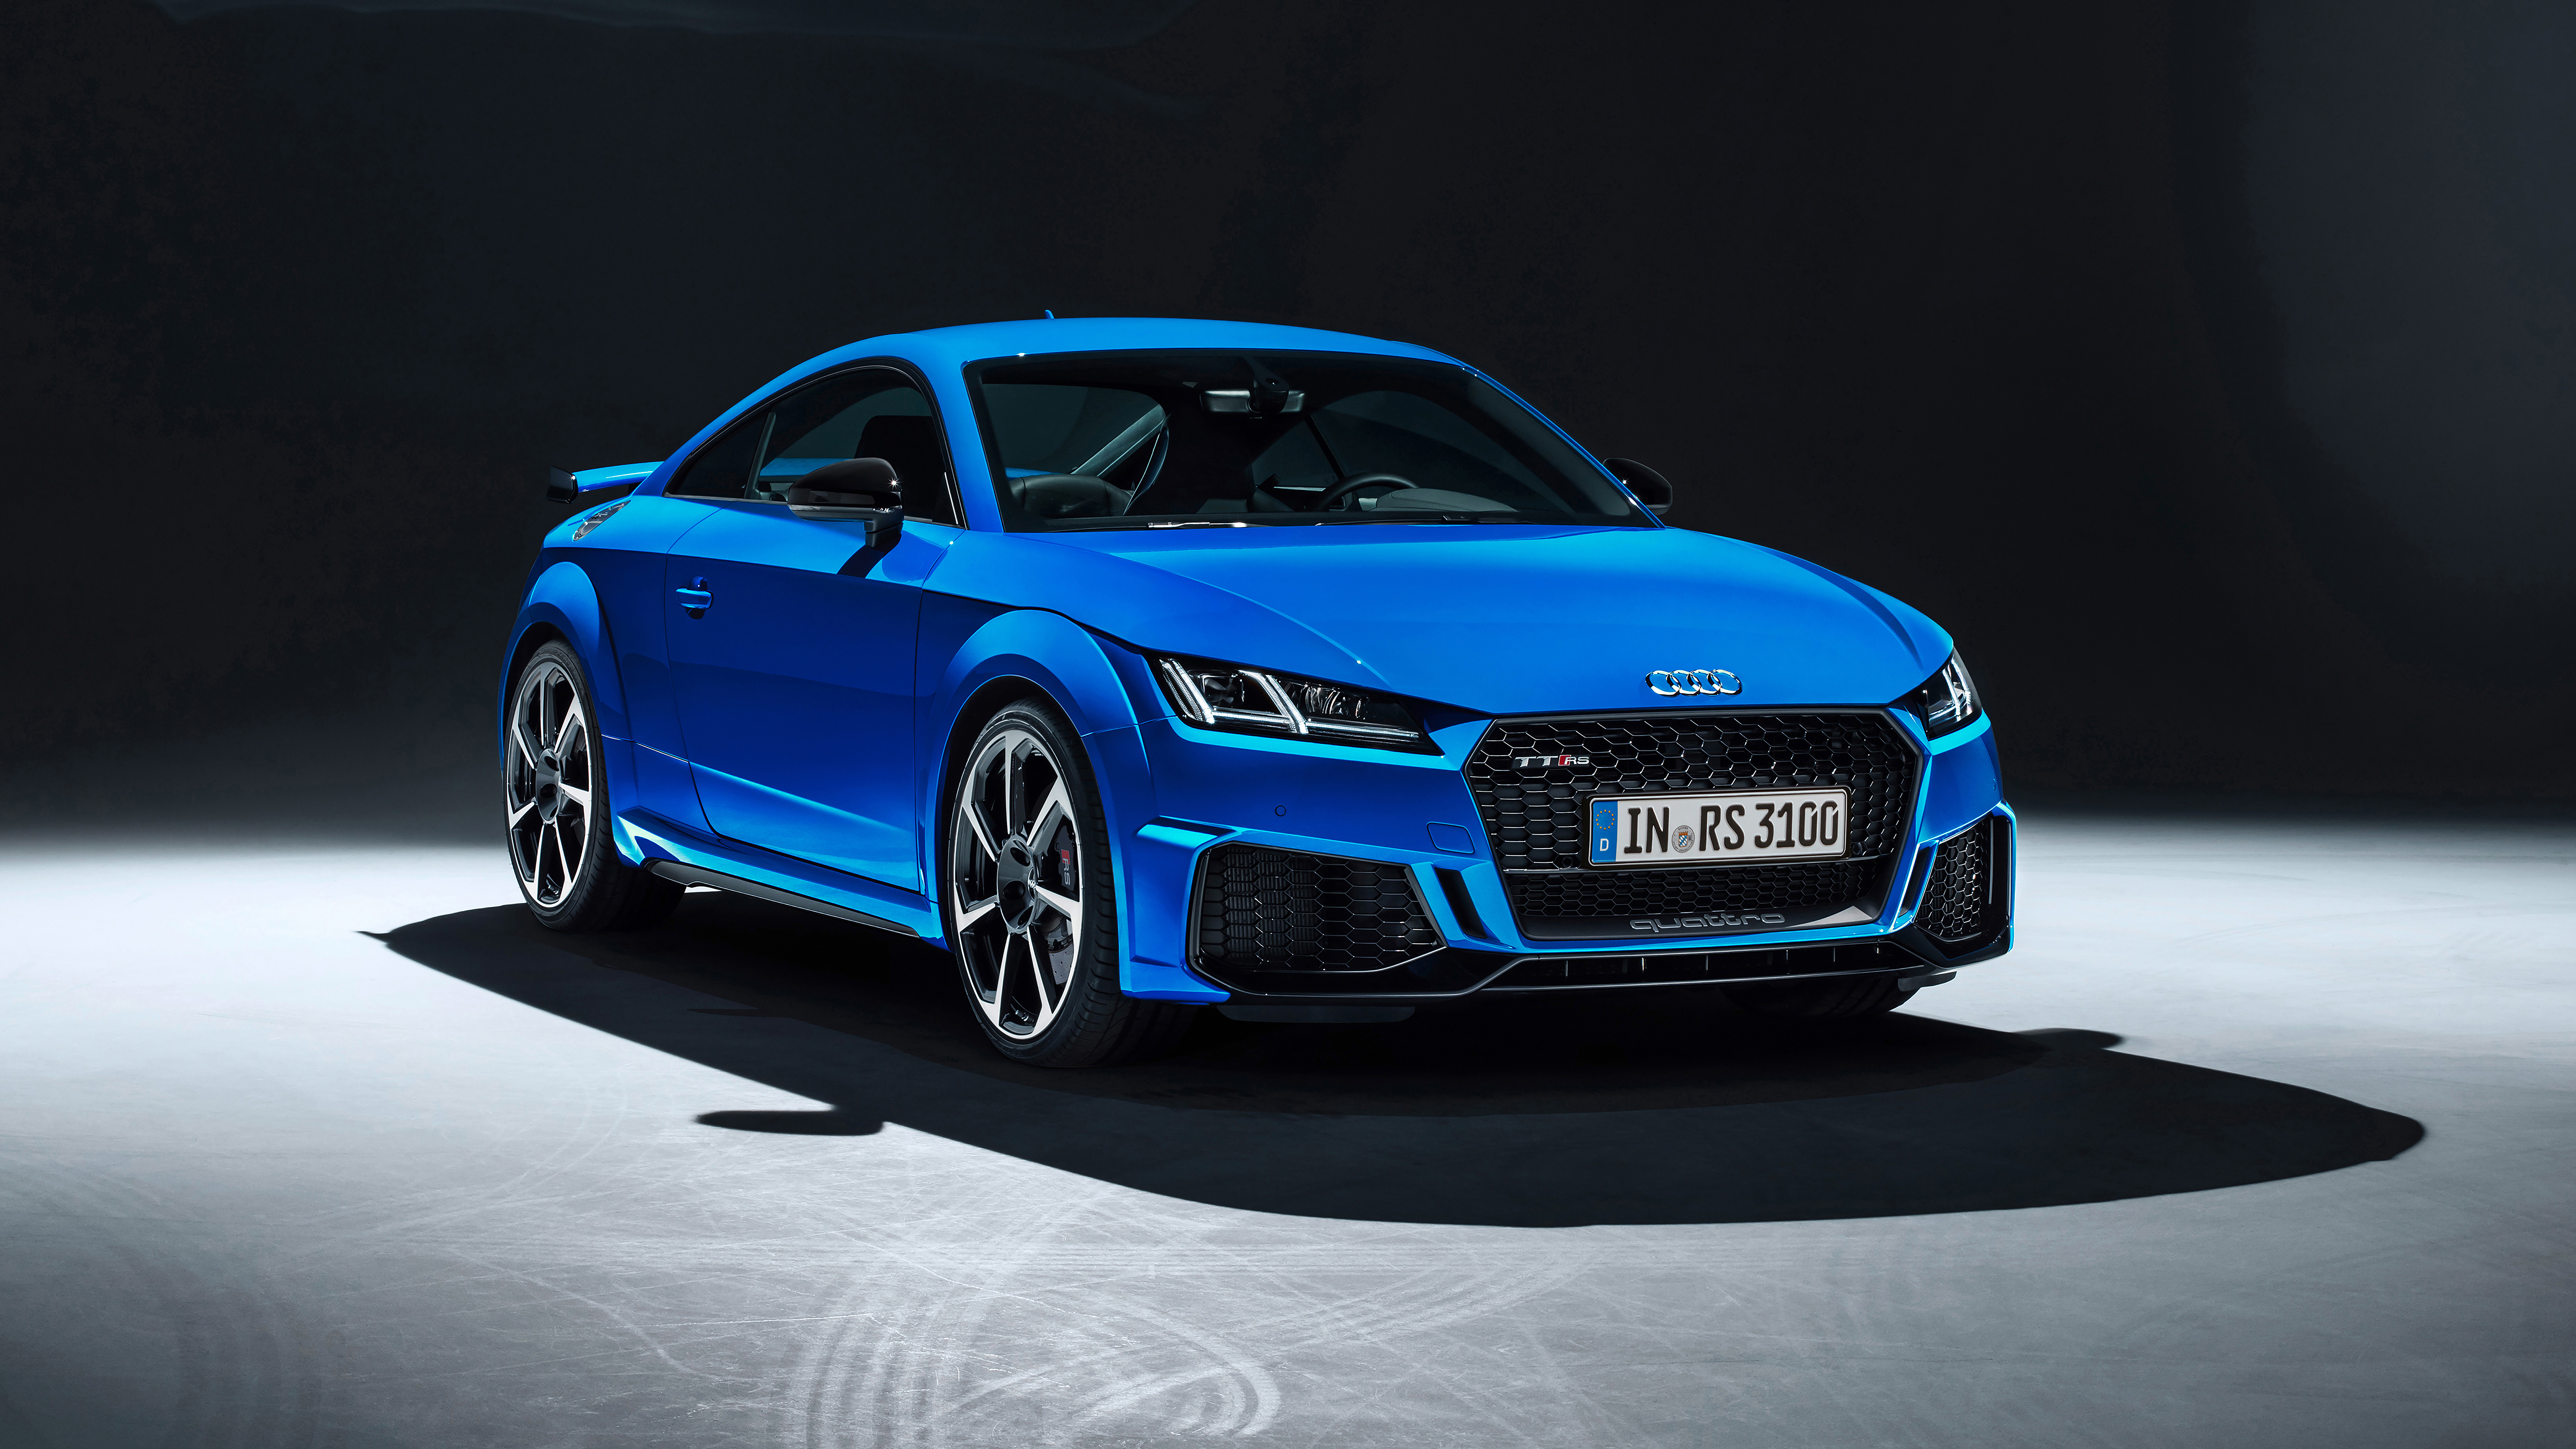 Audi Tt Rs Coupe 2019 4k 8k Wallpapers Hd Wallpapers